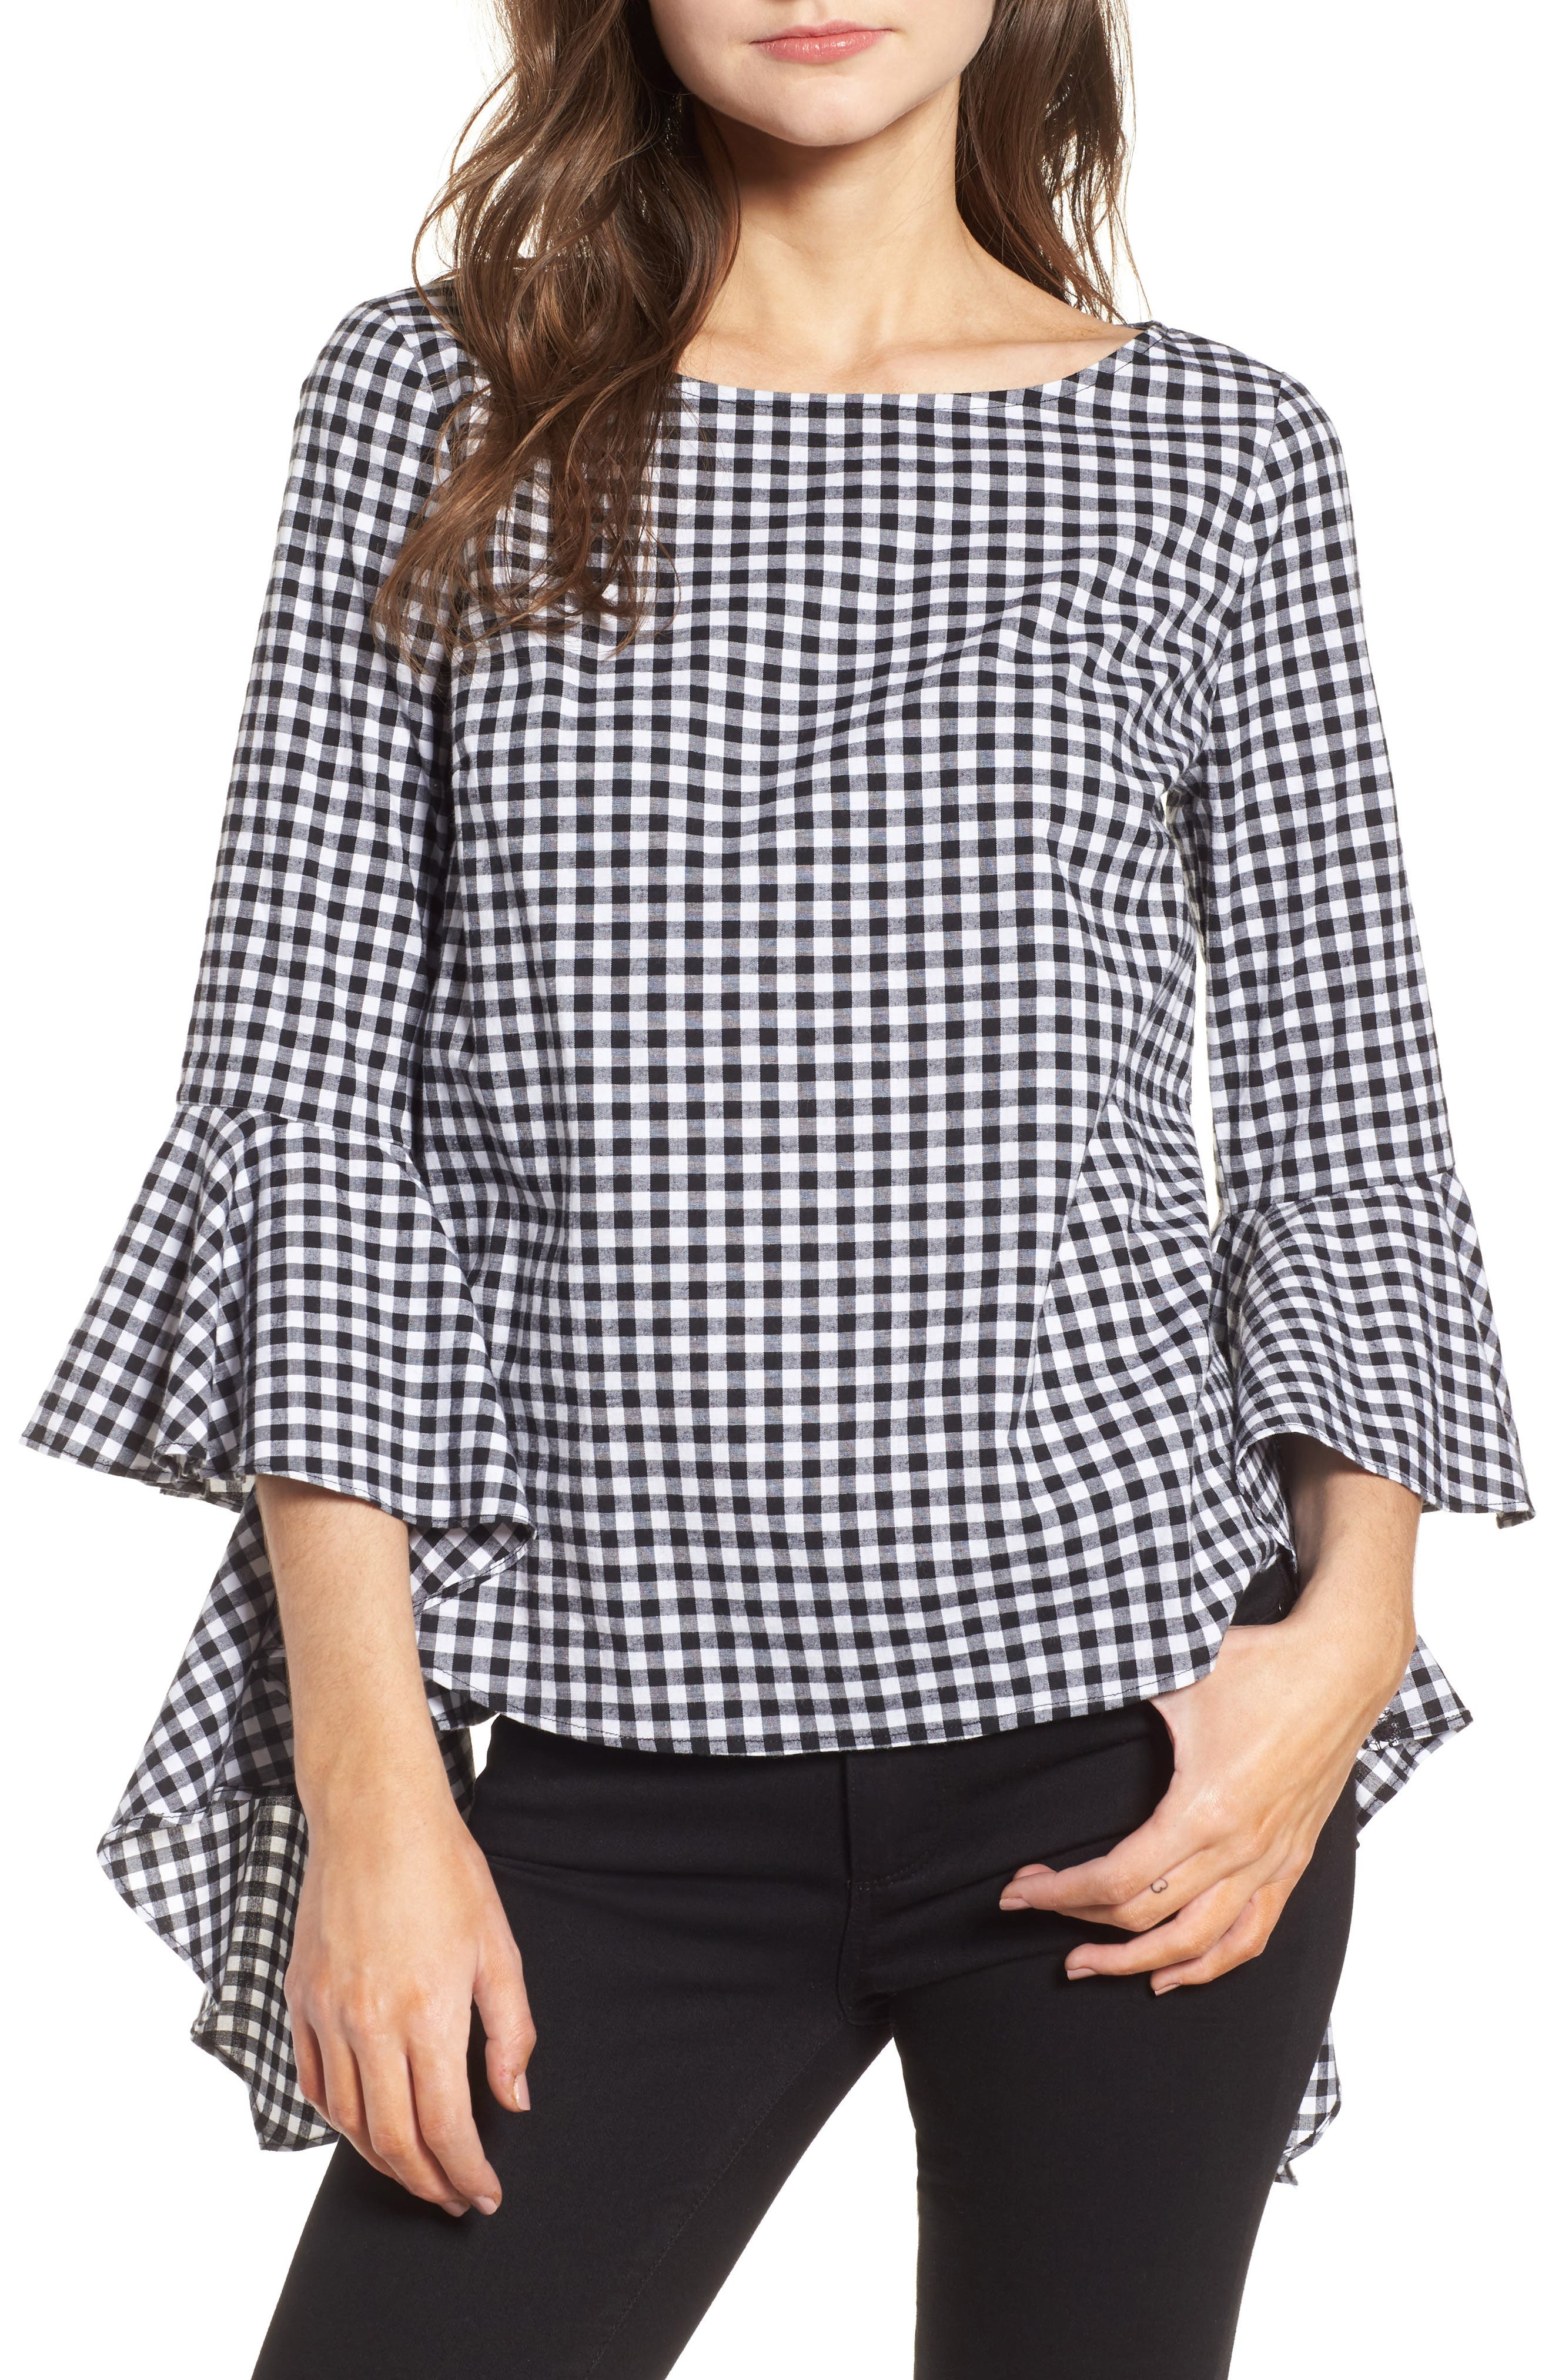 Gingham Ruffle Sleeve Top,                             Main thumbnail 1, color,                             Black- White Gingham